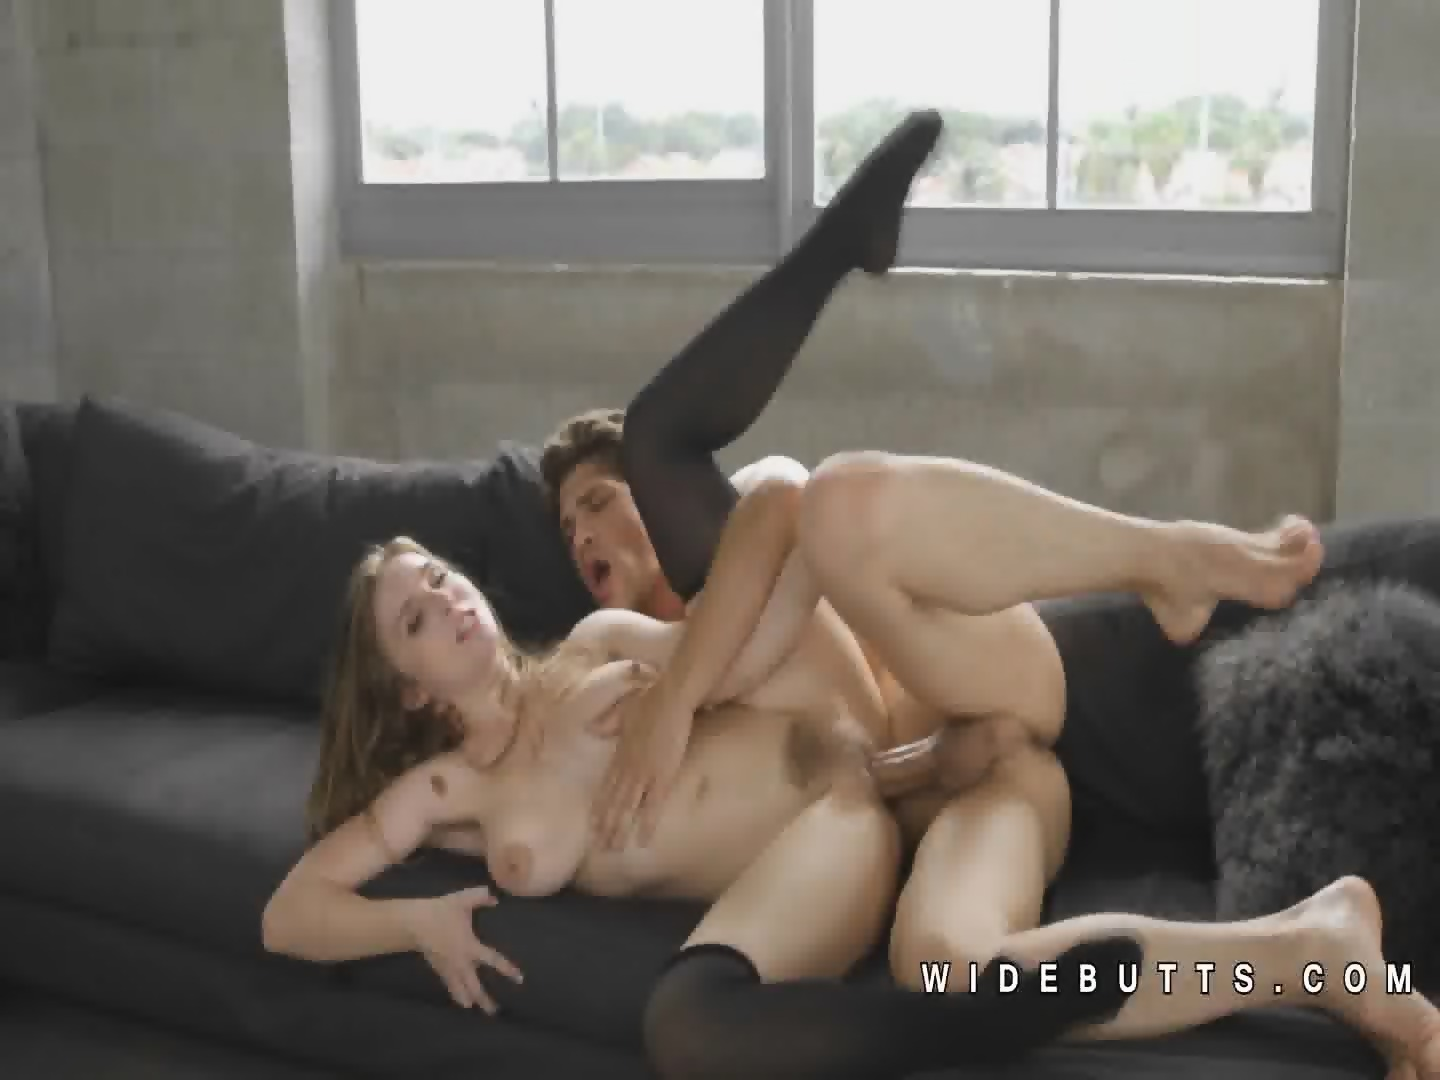 Not absolutely Riding cock movie clip with you